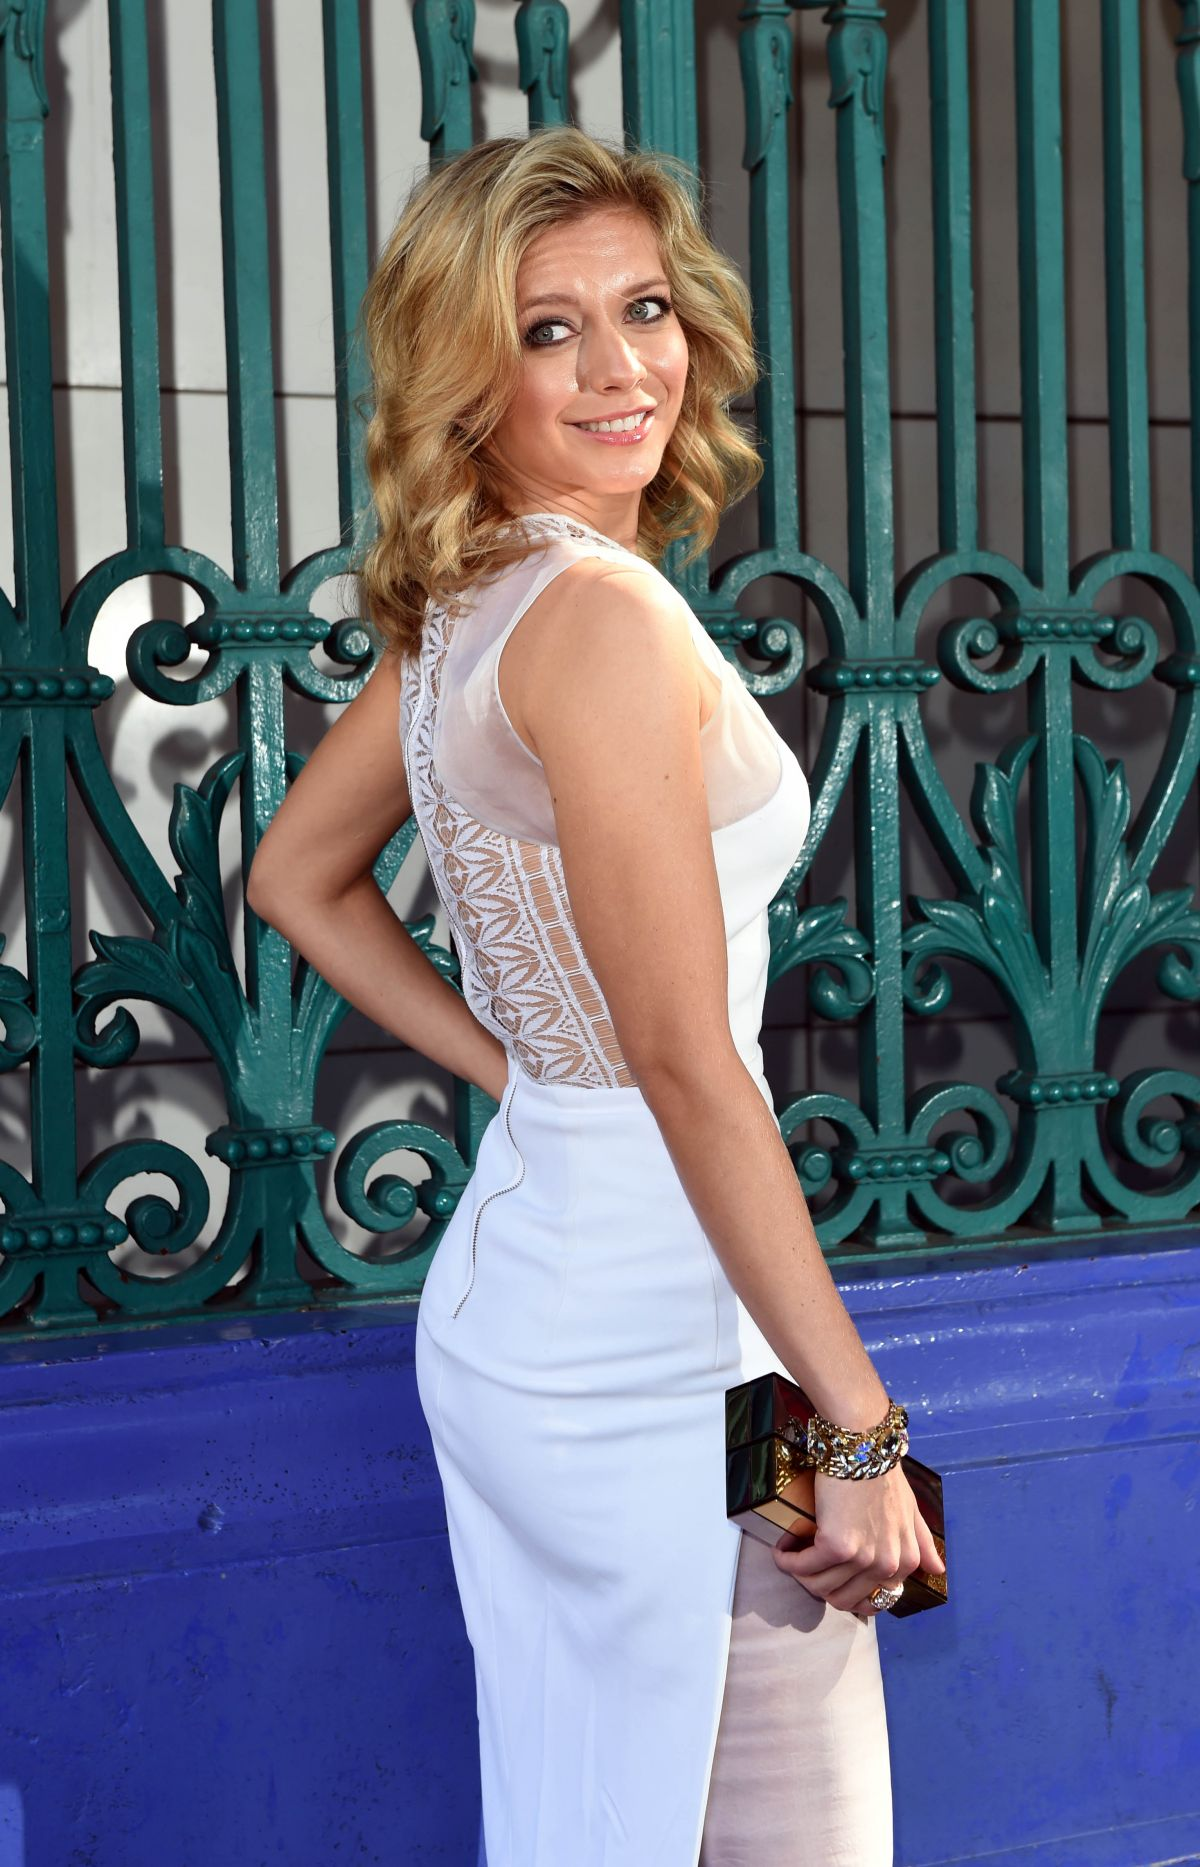 rachel-riley-showing-hot-ass